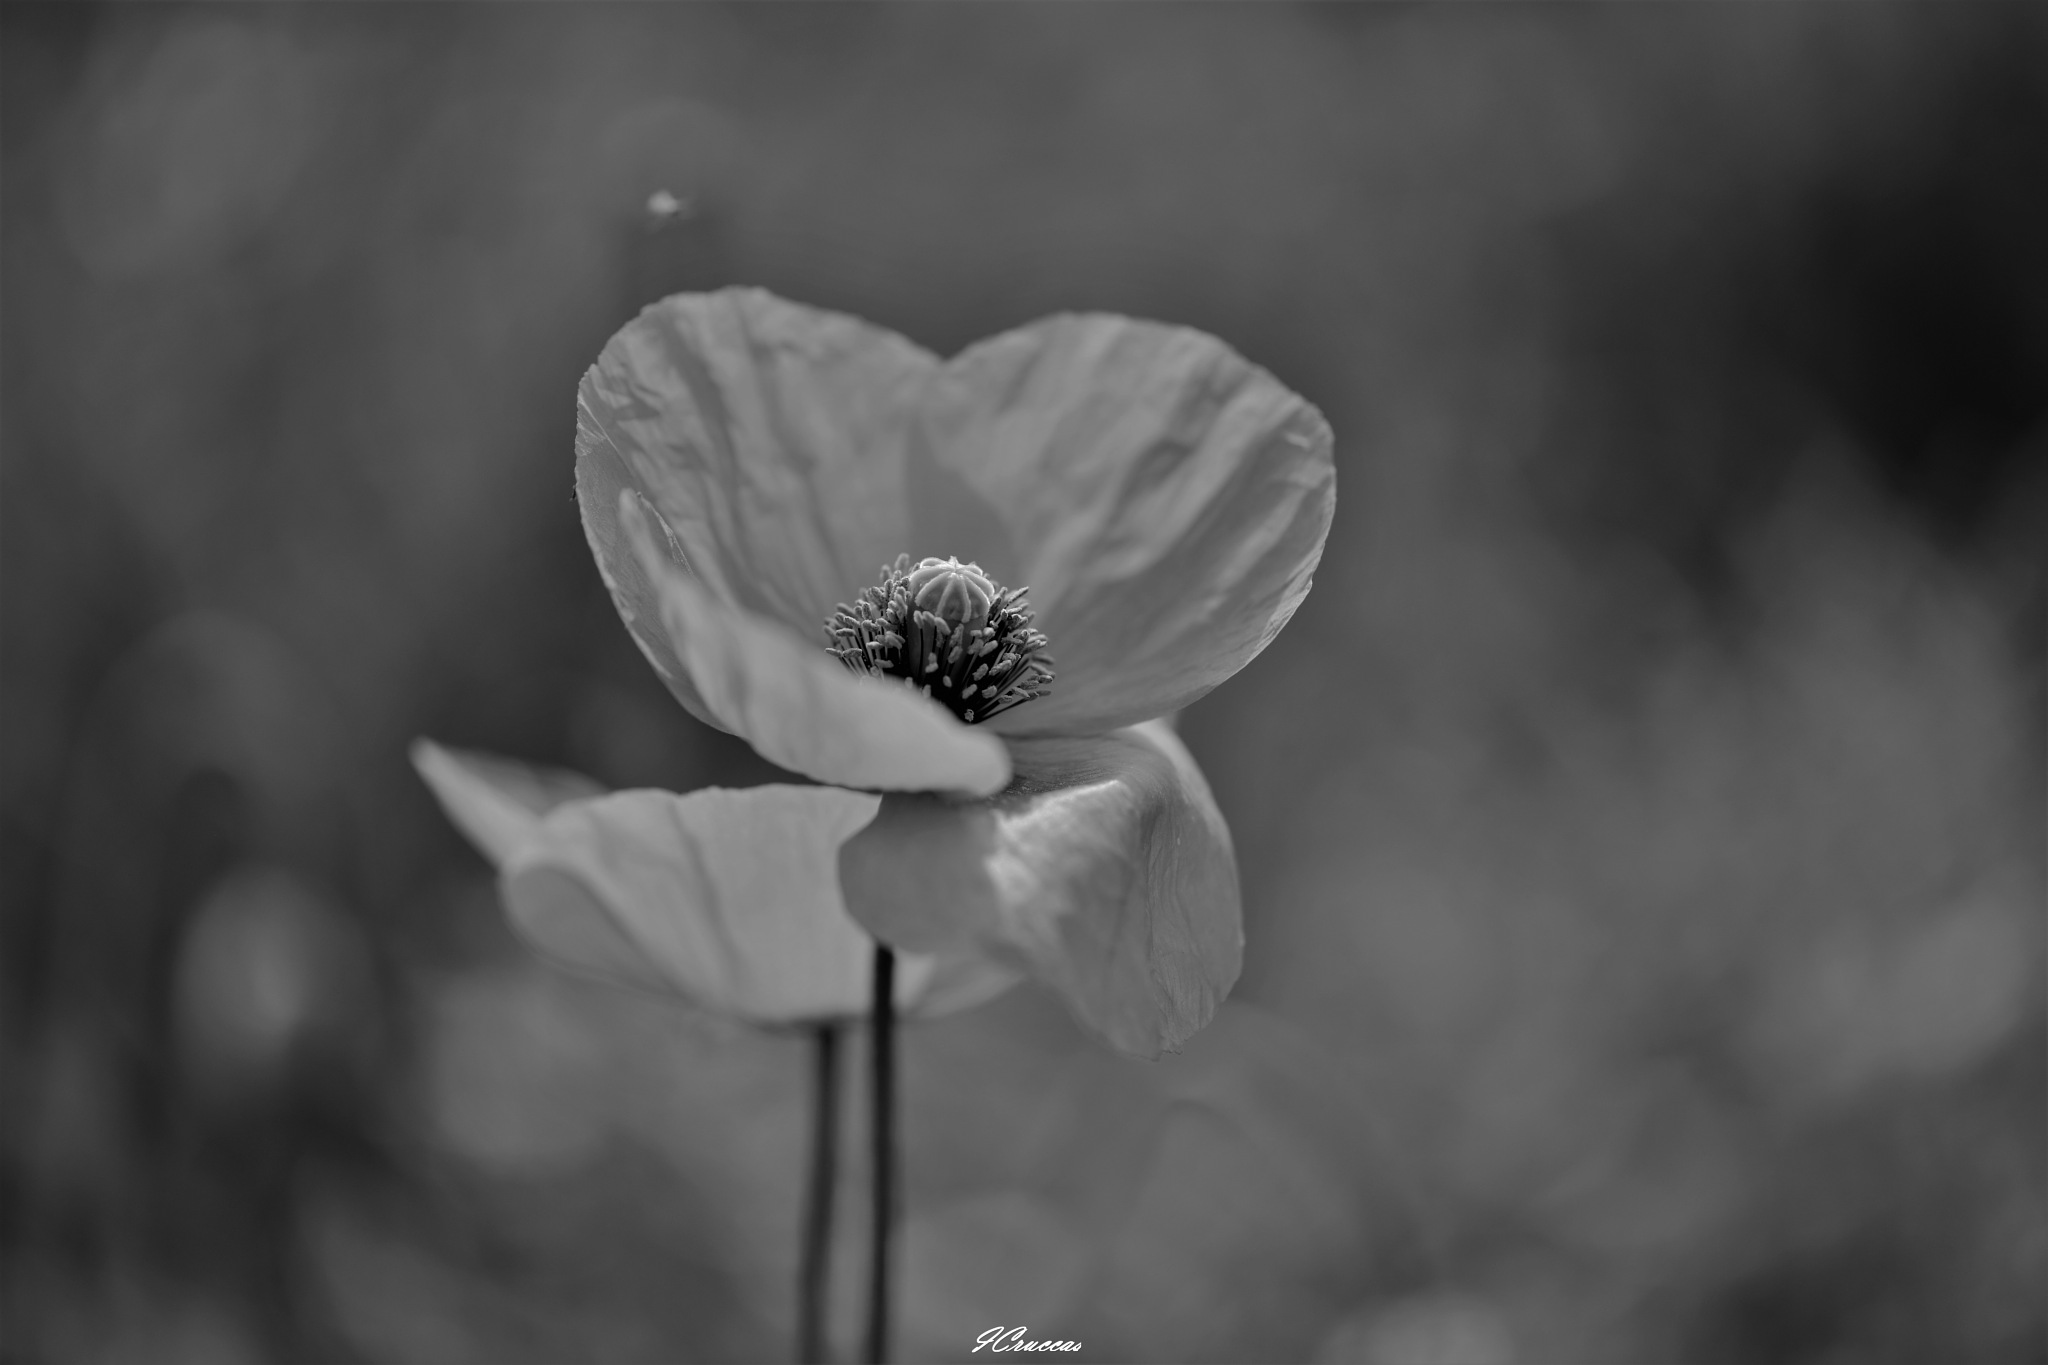 Colorless, but not without charm by ignazio cruccas